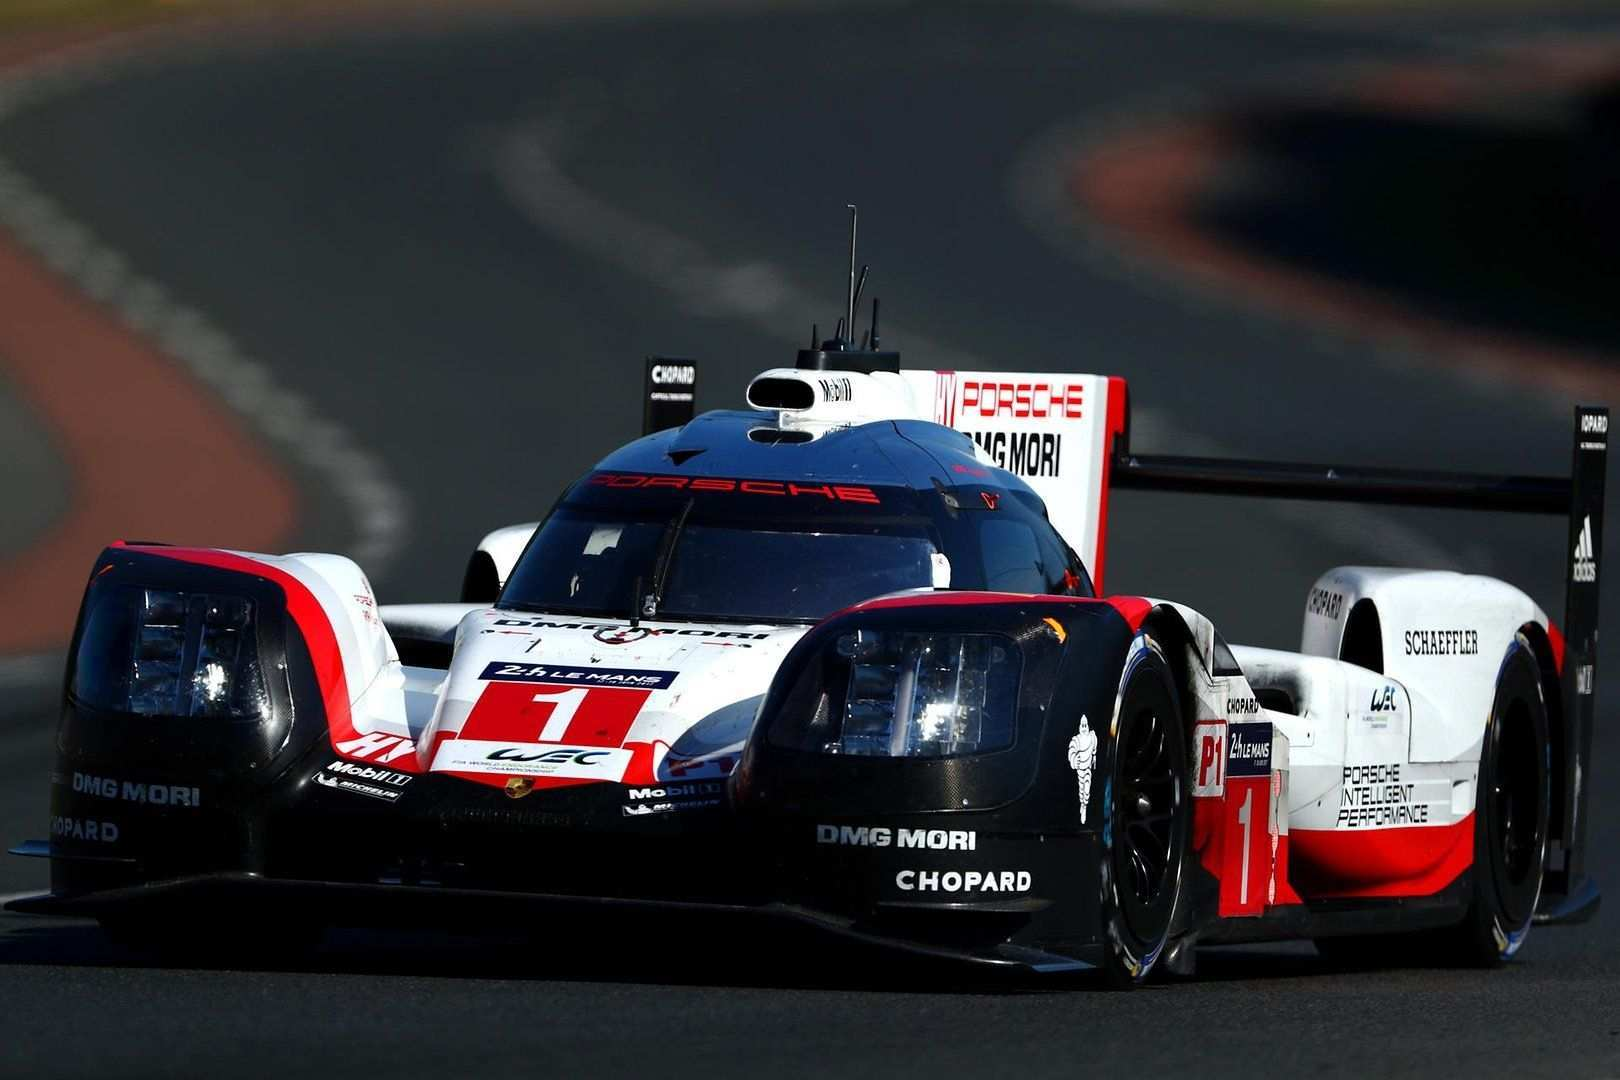 94 Great The Audi Le Mans 2019 Release Specs And Review Engine for The Audi Le Mans 2019 Release Specs And Review